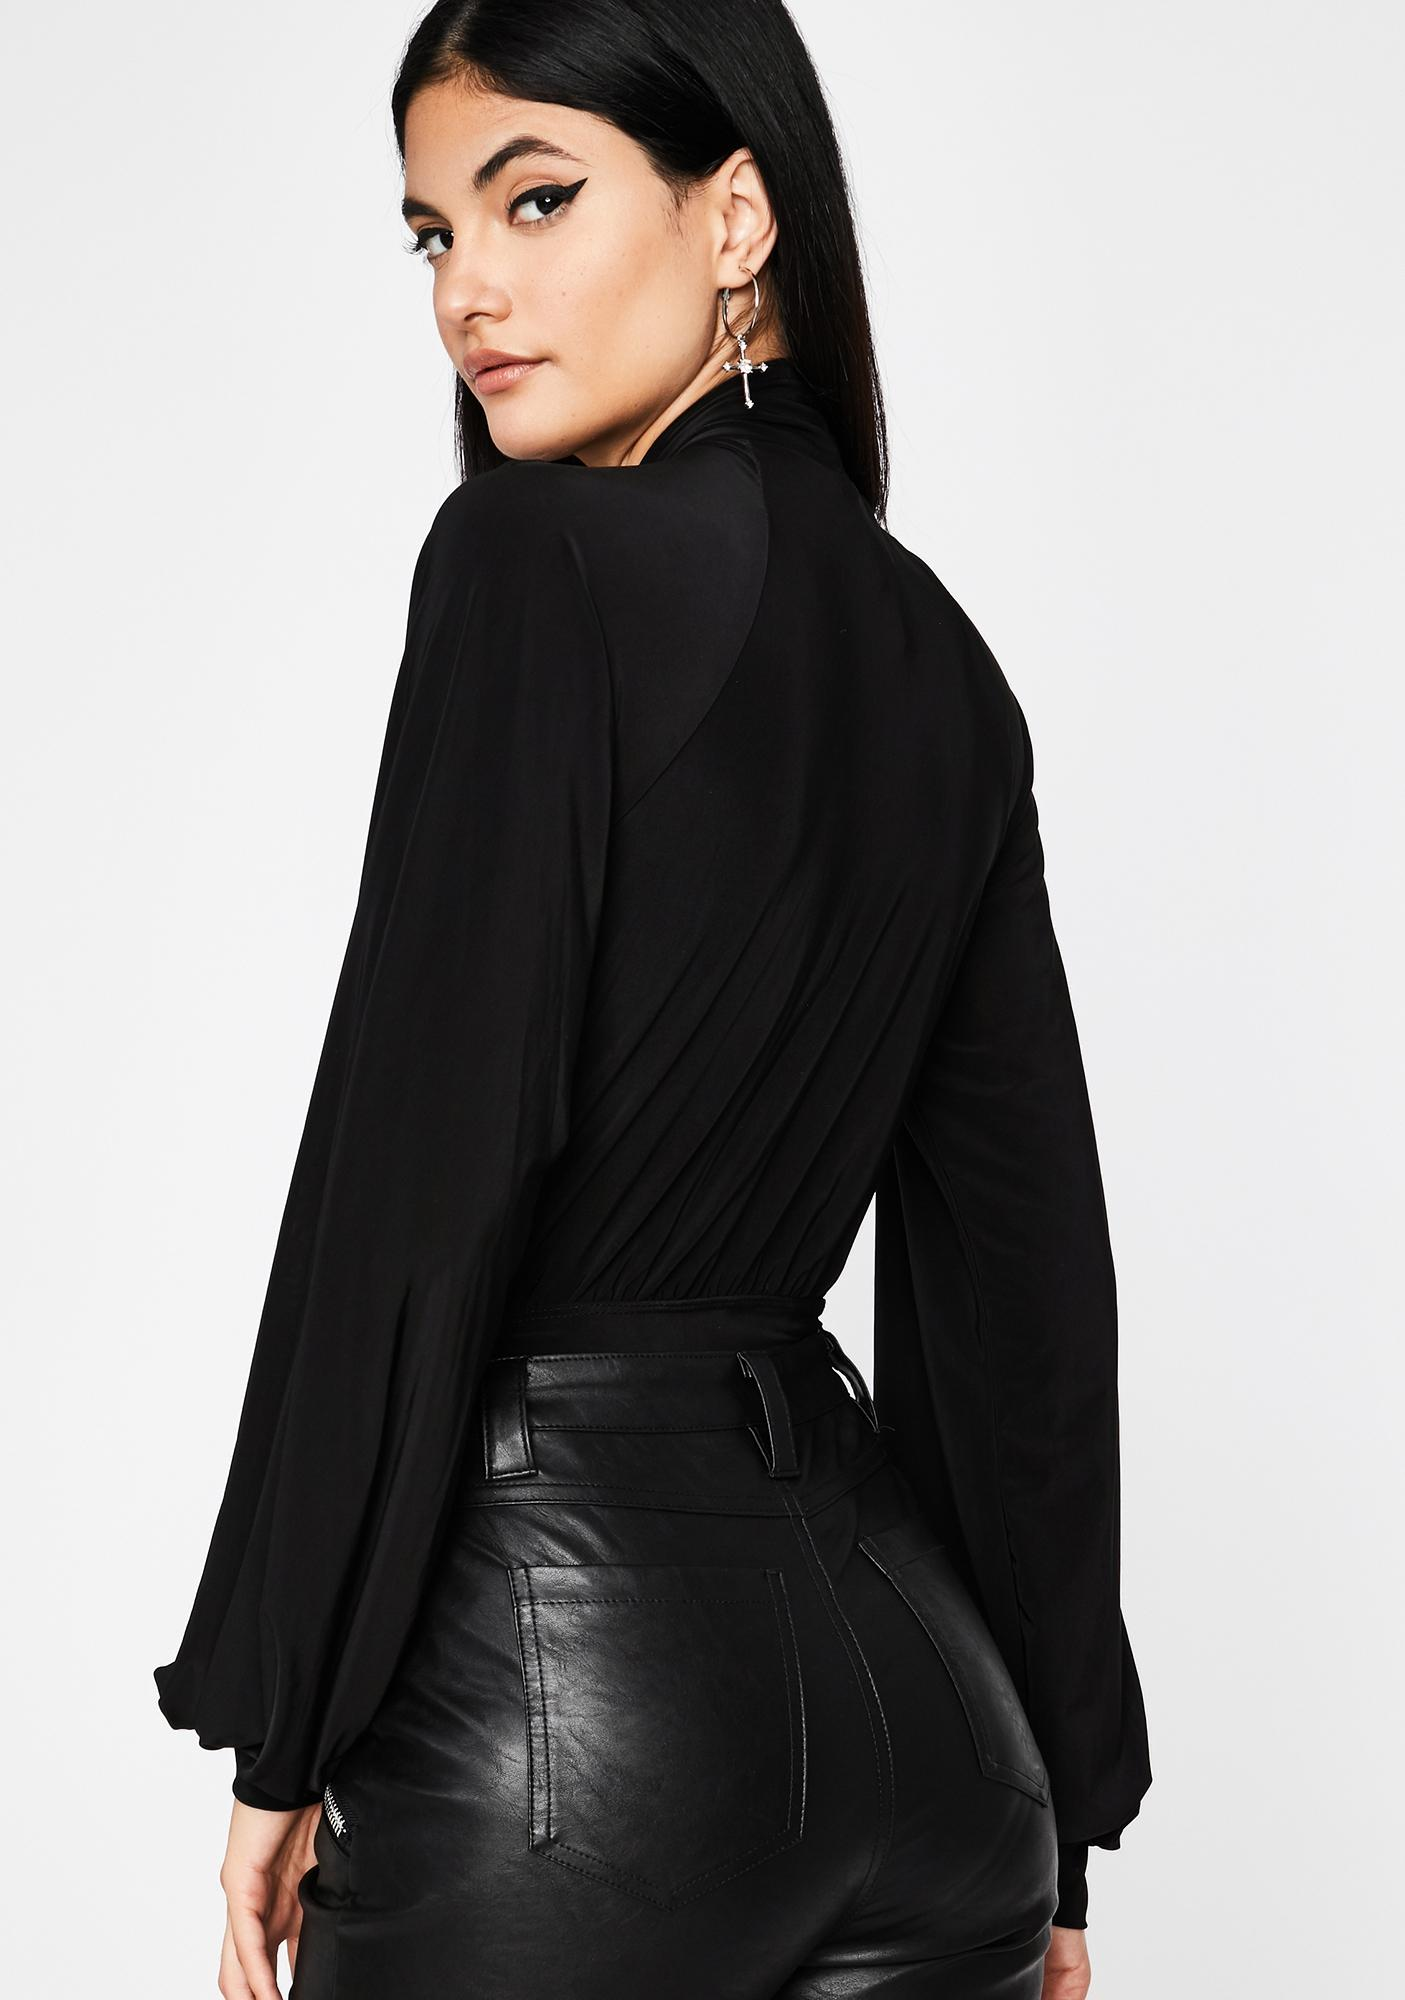 Dark It Comes Naturally Cut-Out Bodysuit